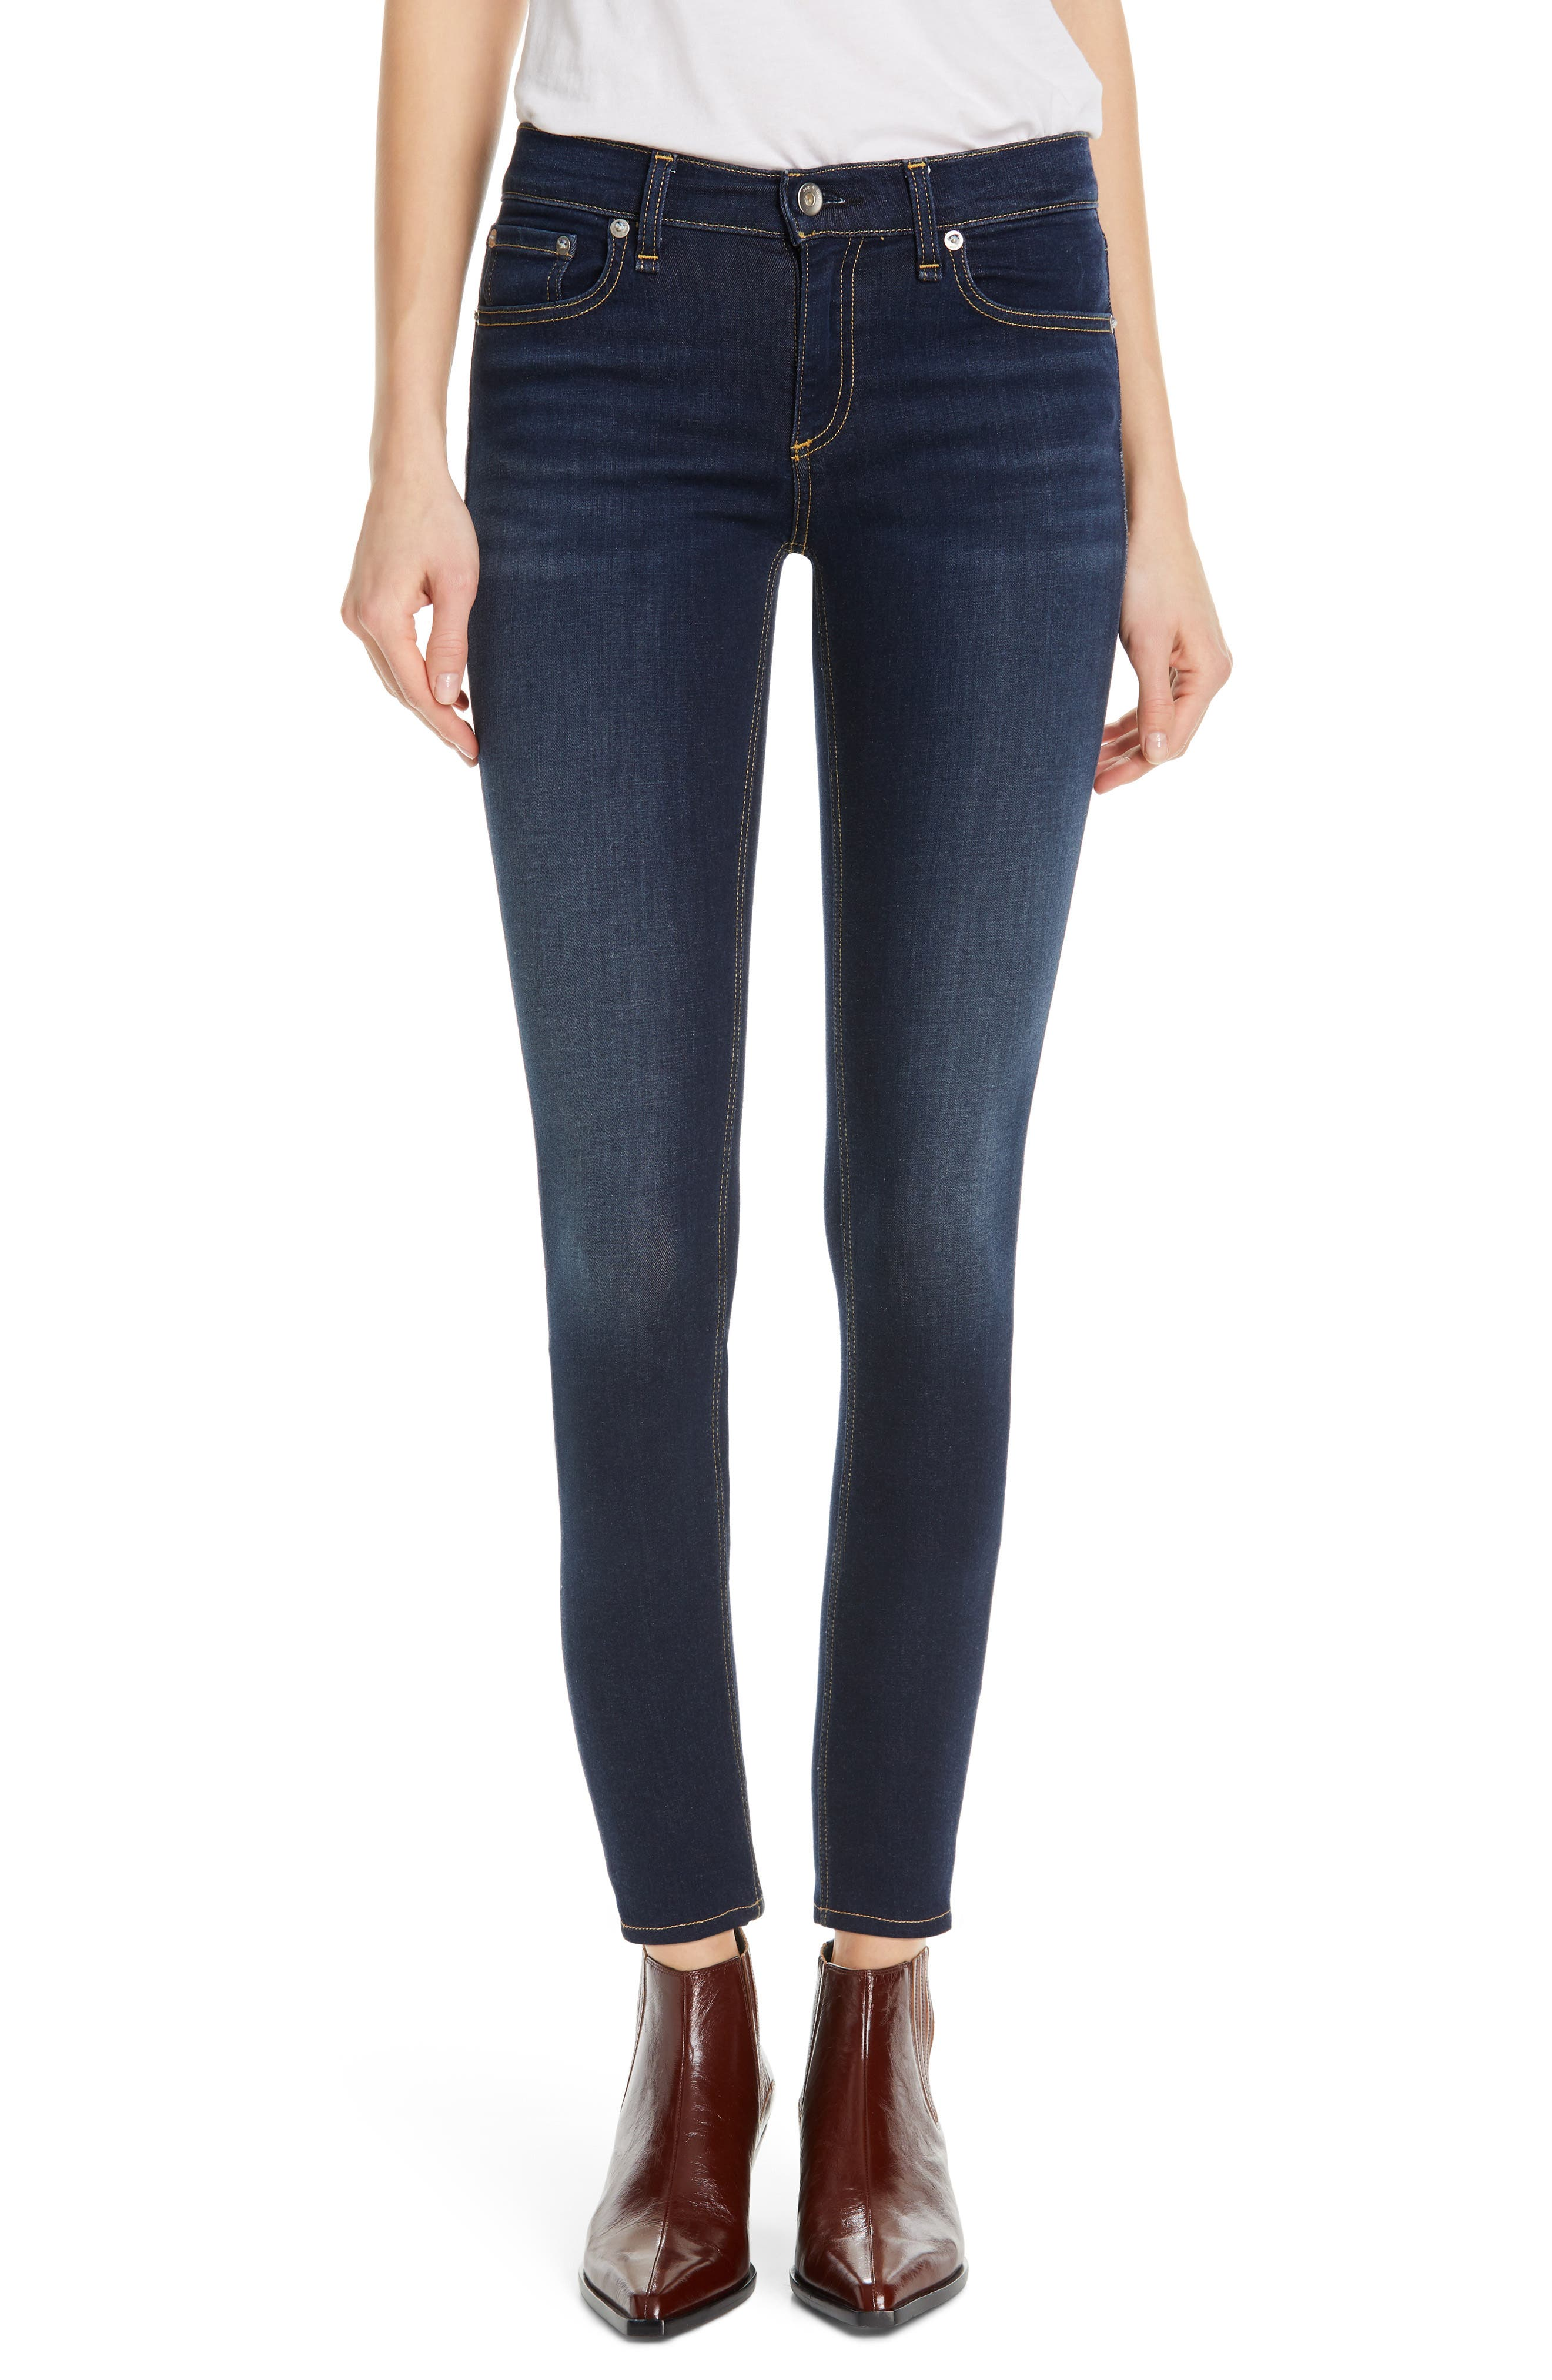 RAG & BONE, Cate Ankle Skinny Jeans, Main thumbnail 1, color, CARMEN